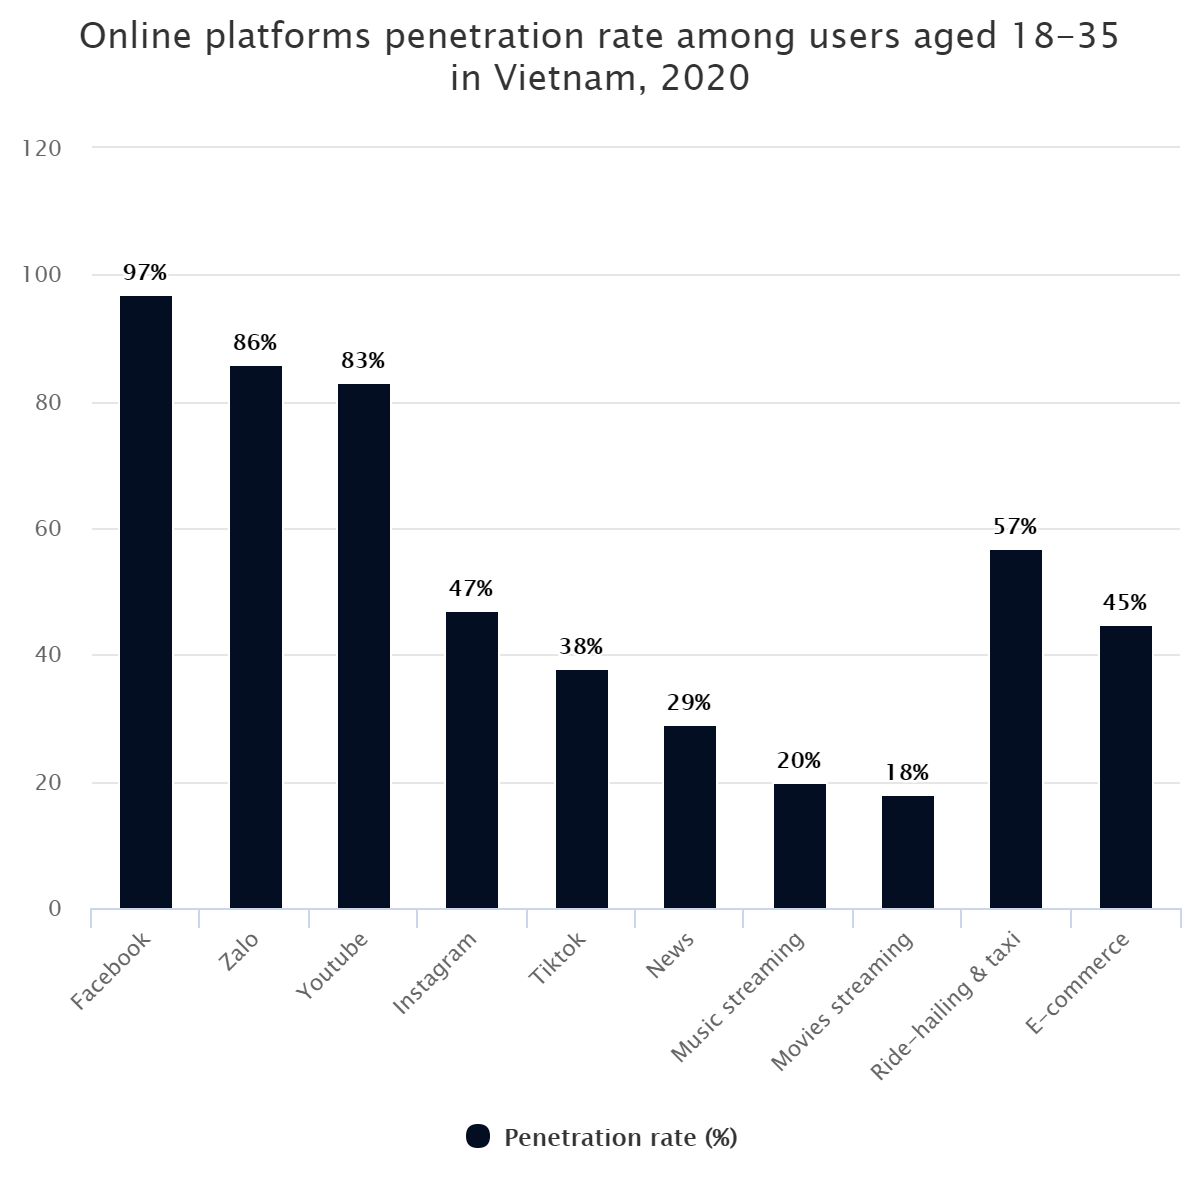 Online platforms penetration rate among users aged 18-35 in Vietnam, 2020